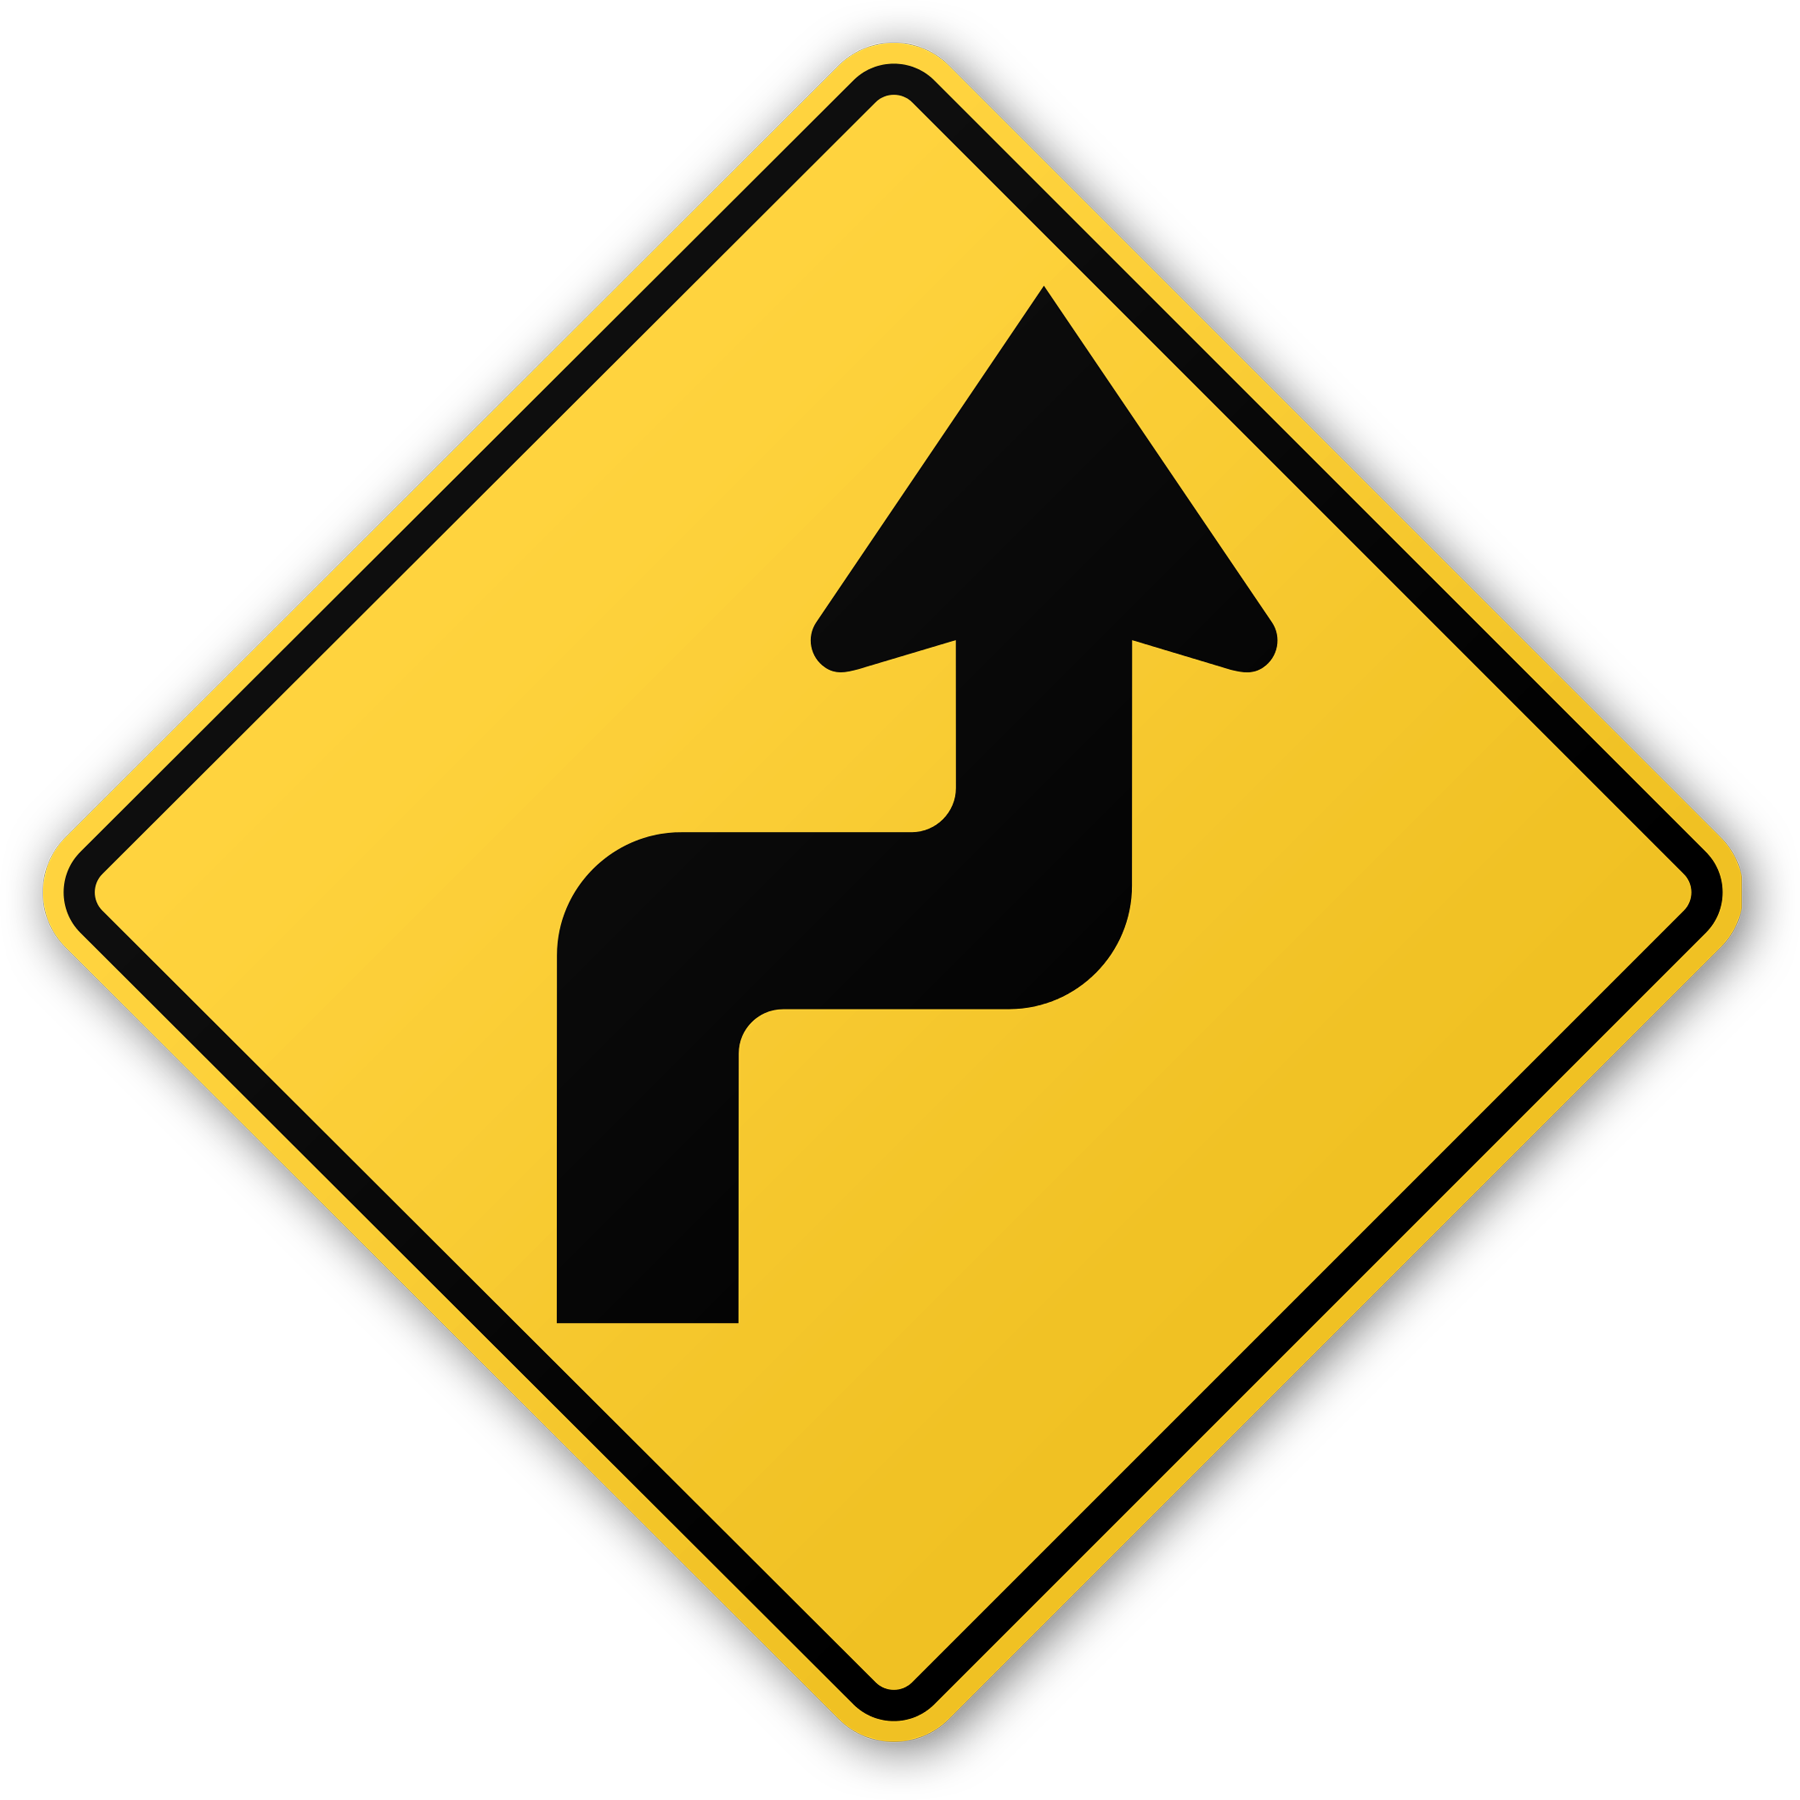 Zigzag Road Sign - Zigzag Road PNG